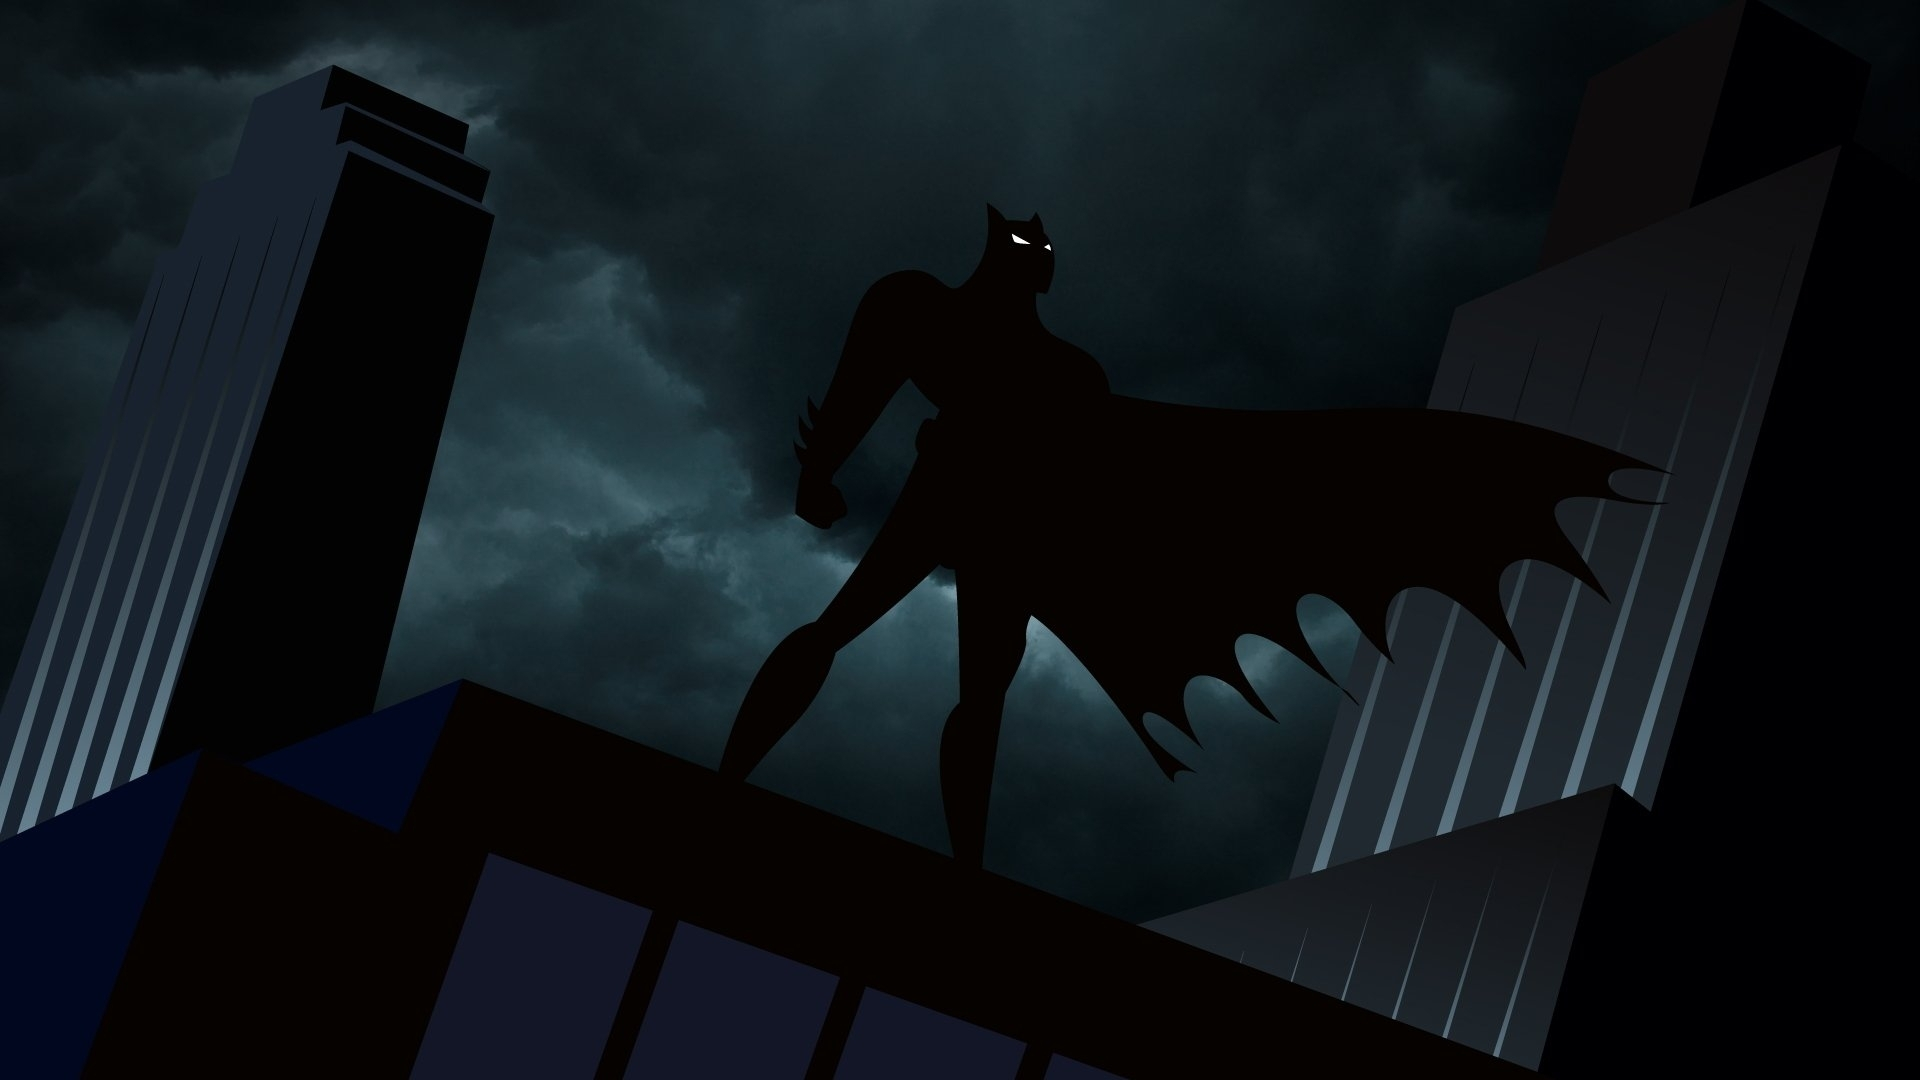 new batman animated wallpaper desktop collection - anime wallpaper hd